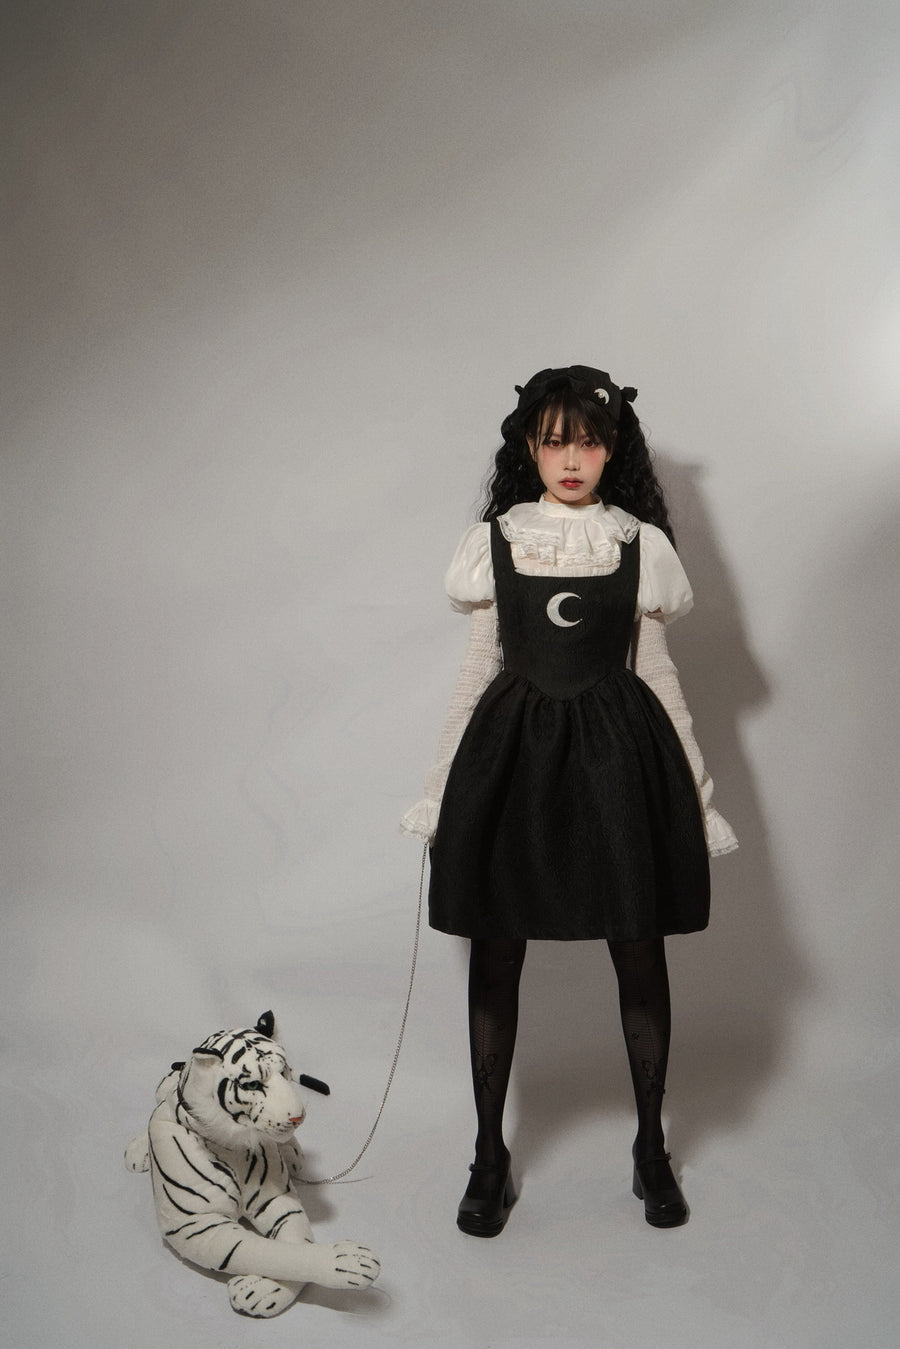 [Nololita Official] Rose Fantasy Vintage Moon Dress [Premium Selected] - Peiliee Shop